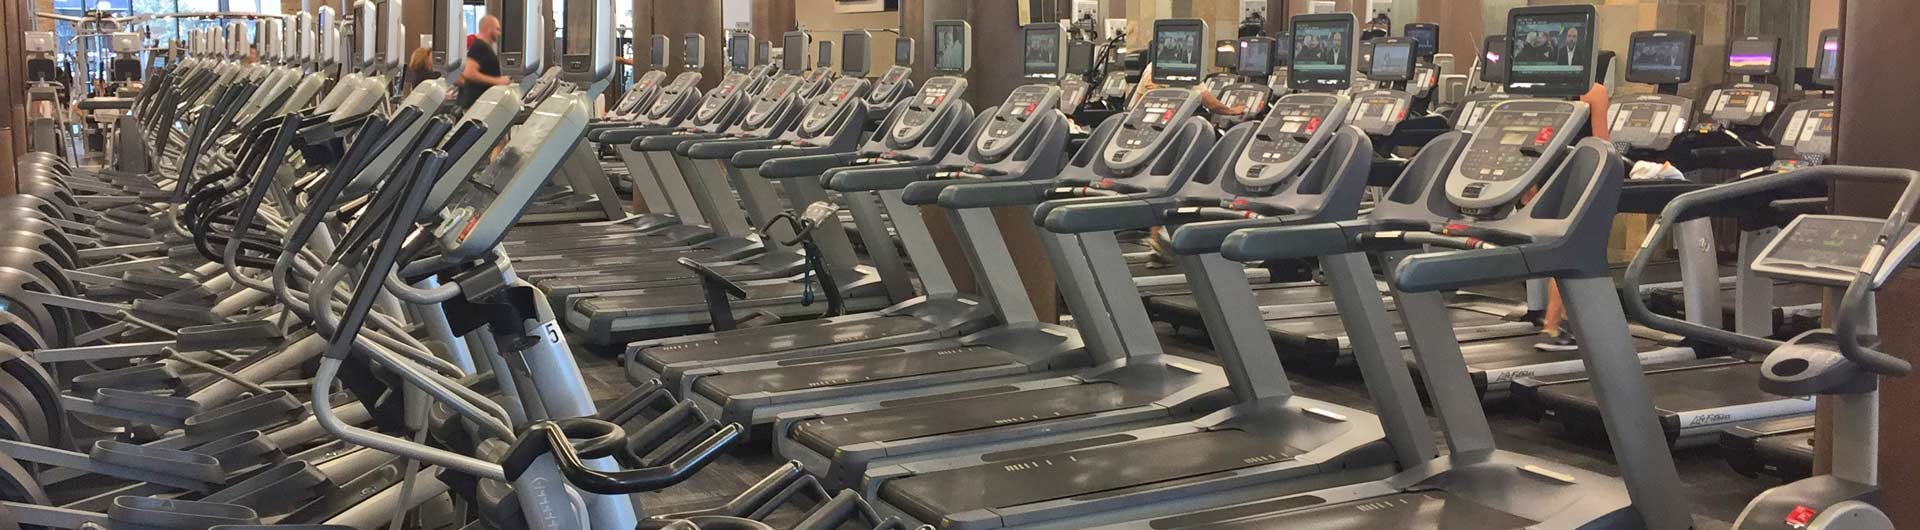 chicago lakeview gym amenities | xsport fitness